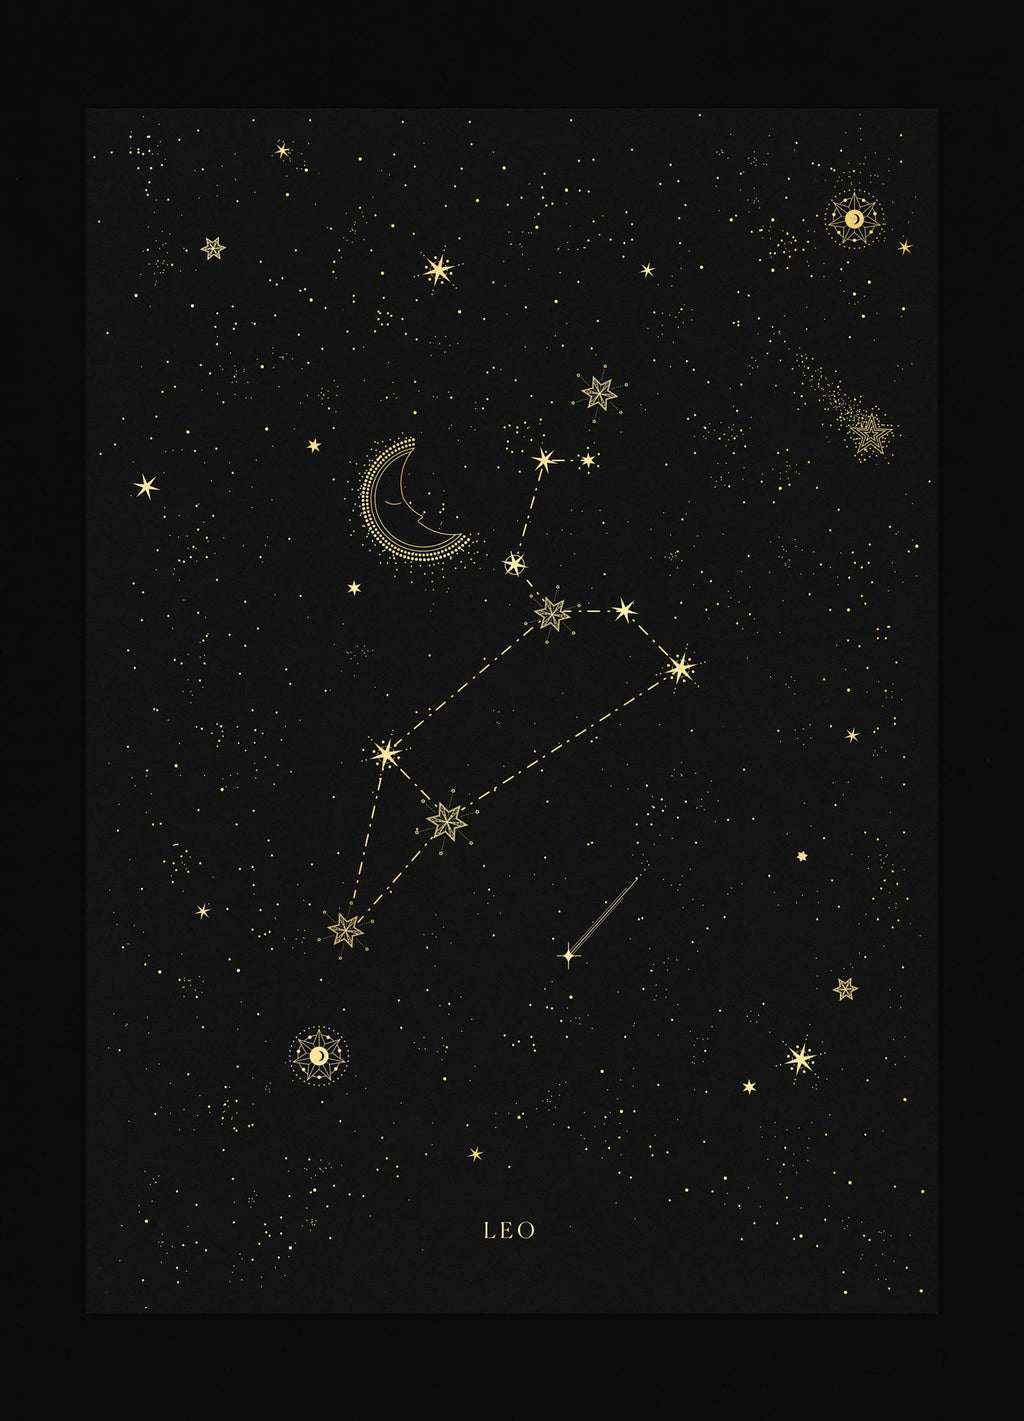 Leo zodiac constellation gold metallic foil print on black paper by Cocorrina